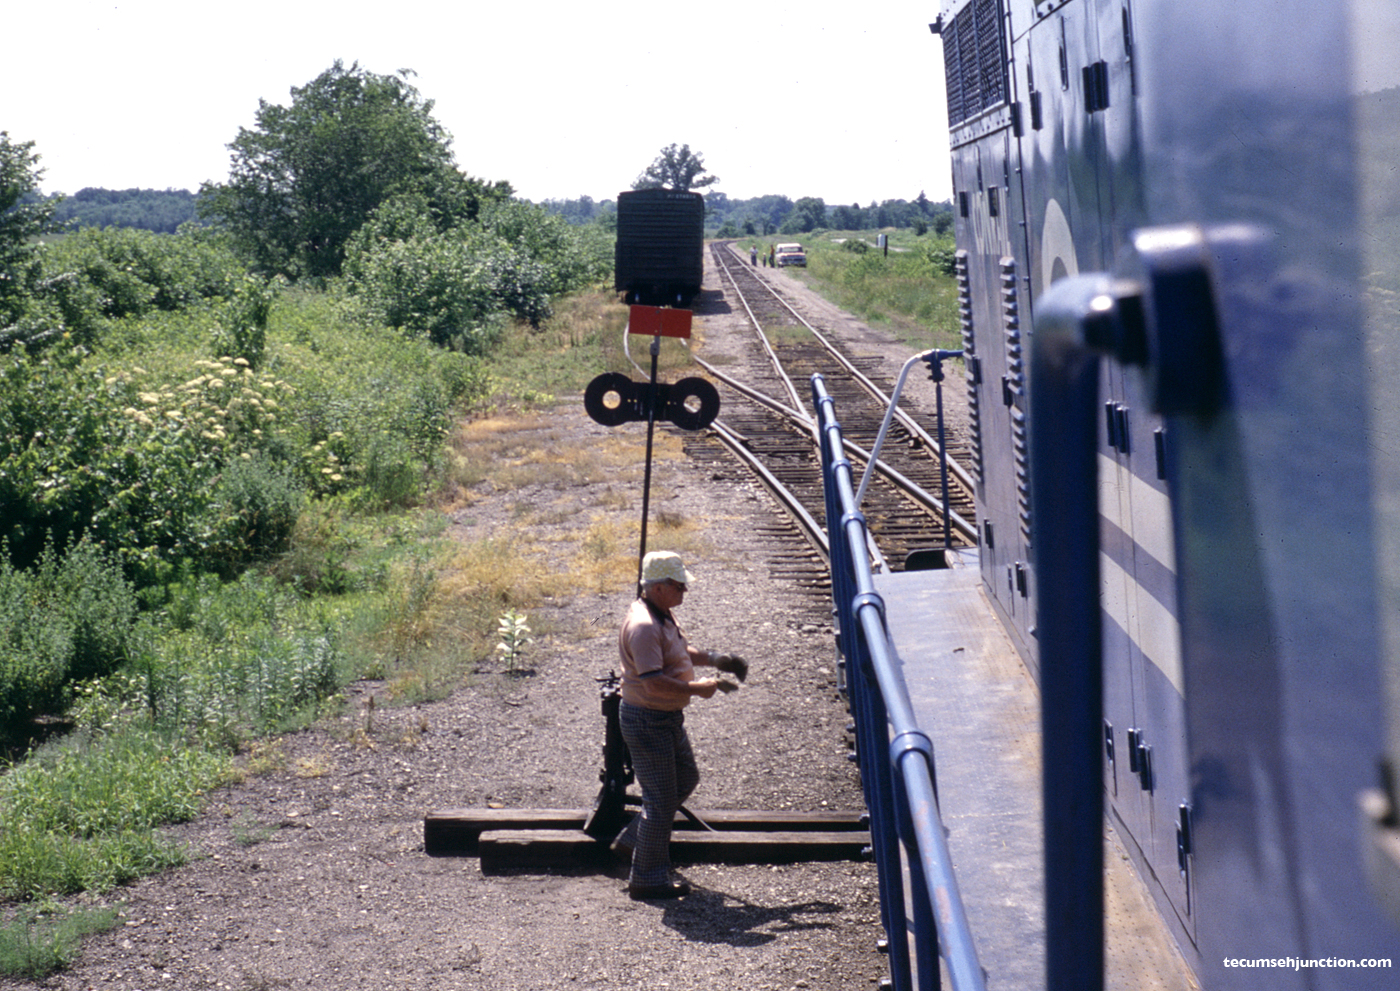 The CSR-1 switches the Lenawee County Railroad interchange track at Lenawee Jct., MI on 26 June 1979.